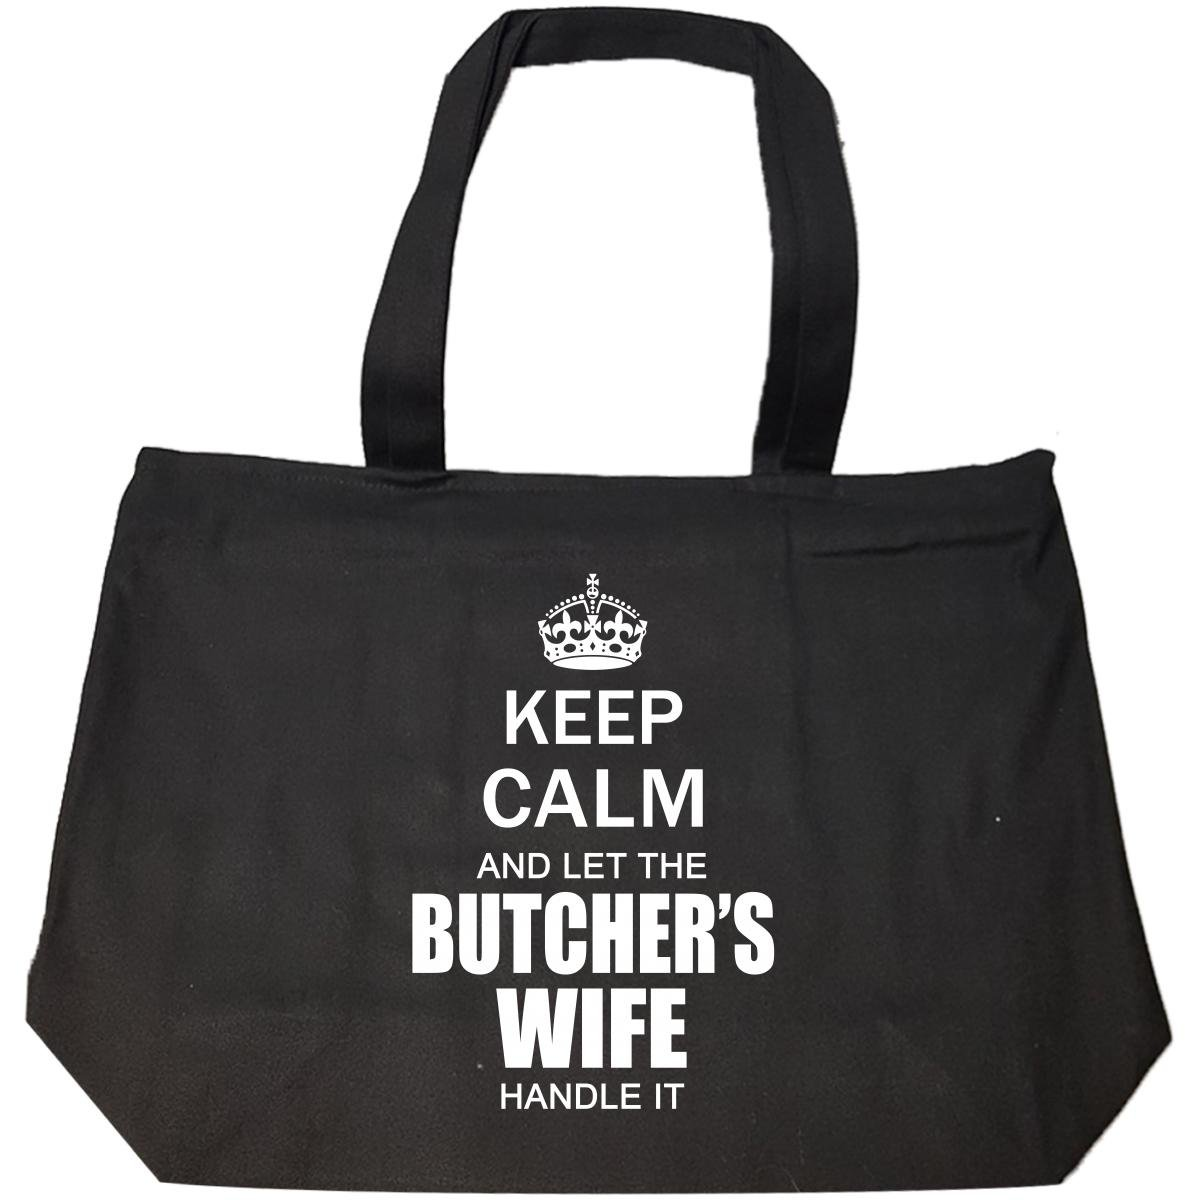 Keep Calm And Let The Butchers Wife Handle It Funny Wedding - Tote Bag With Zip by Shirt Luv (Image #1)